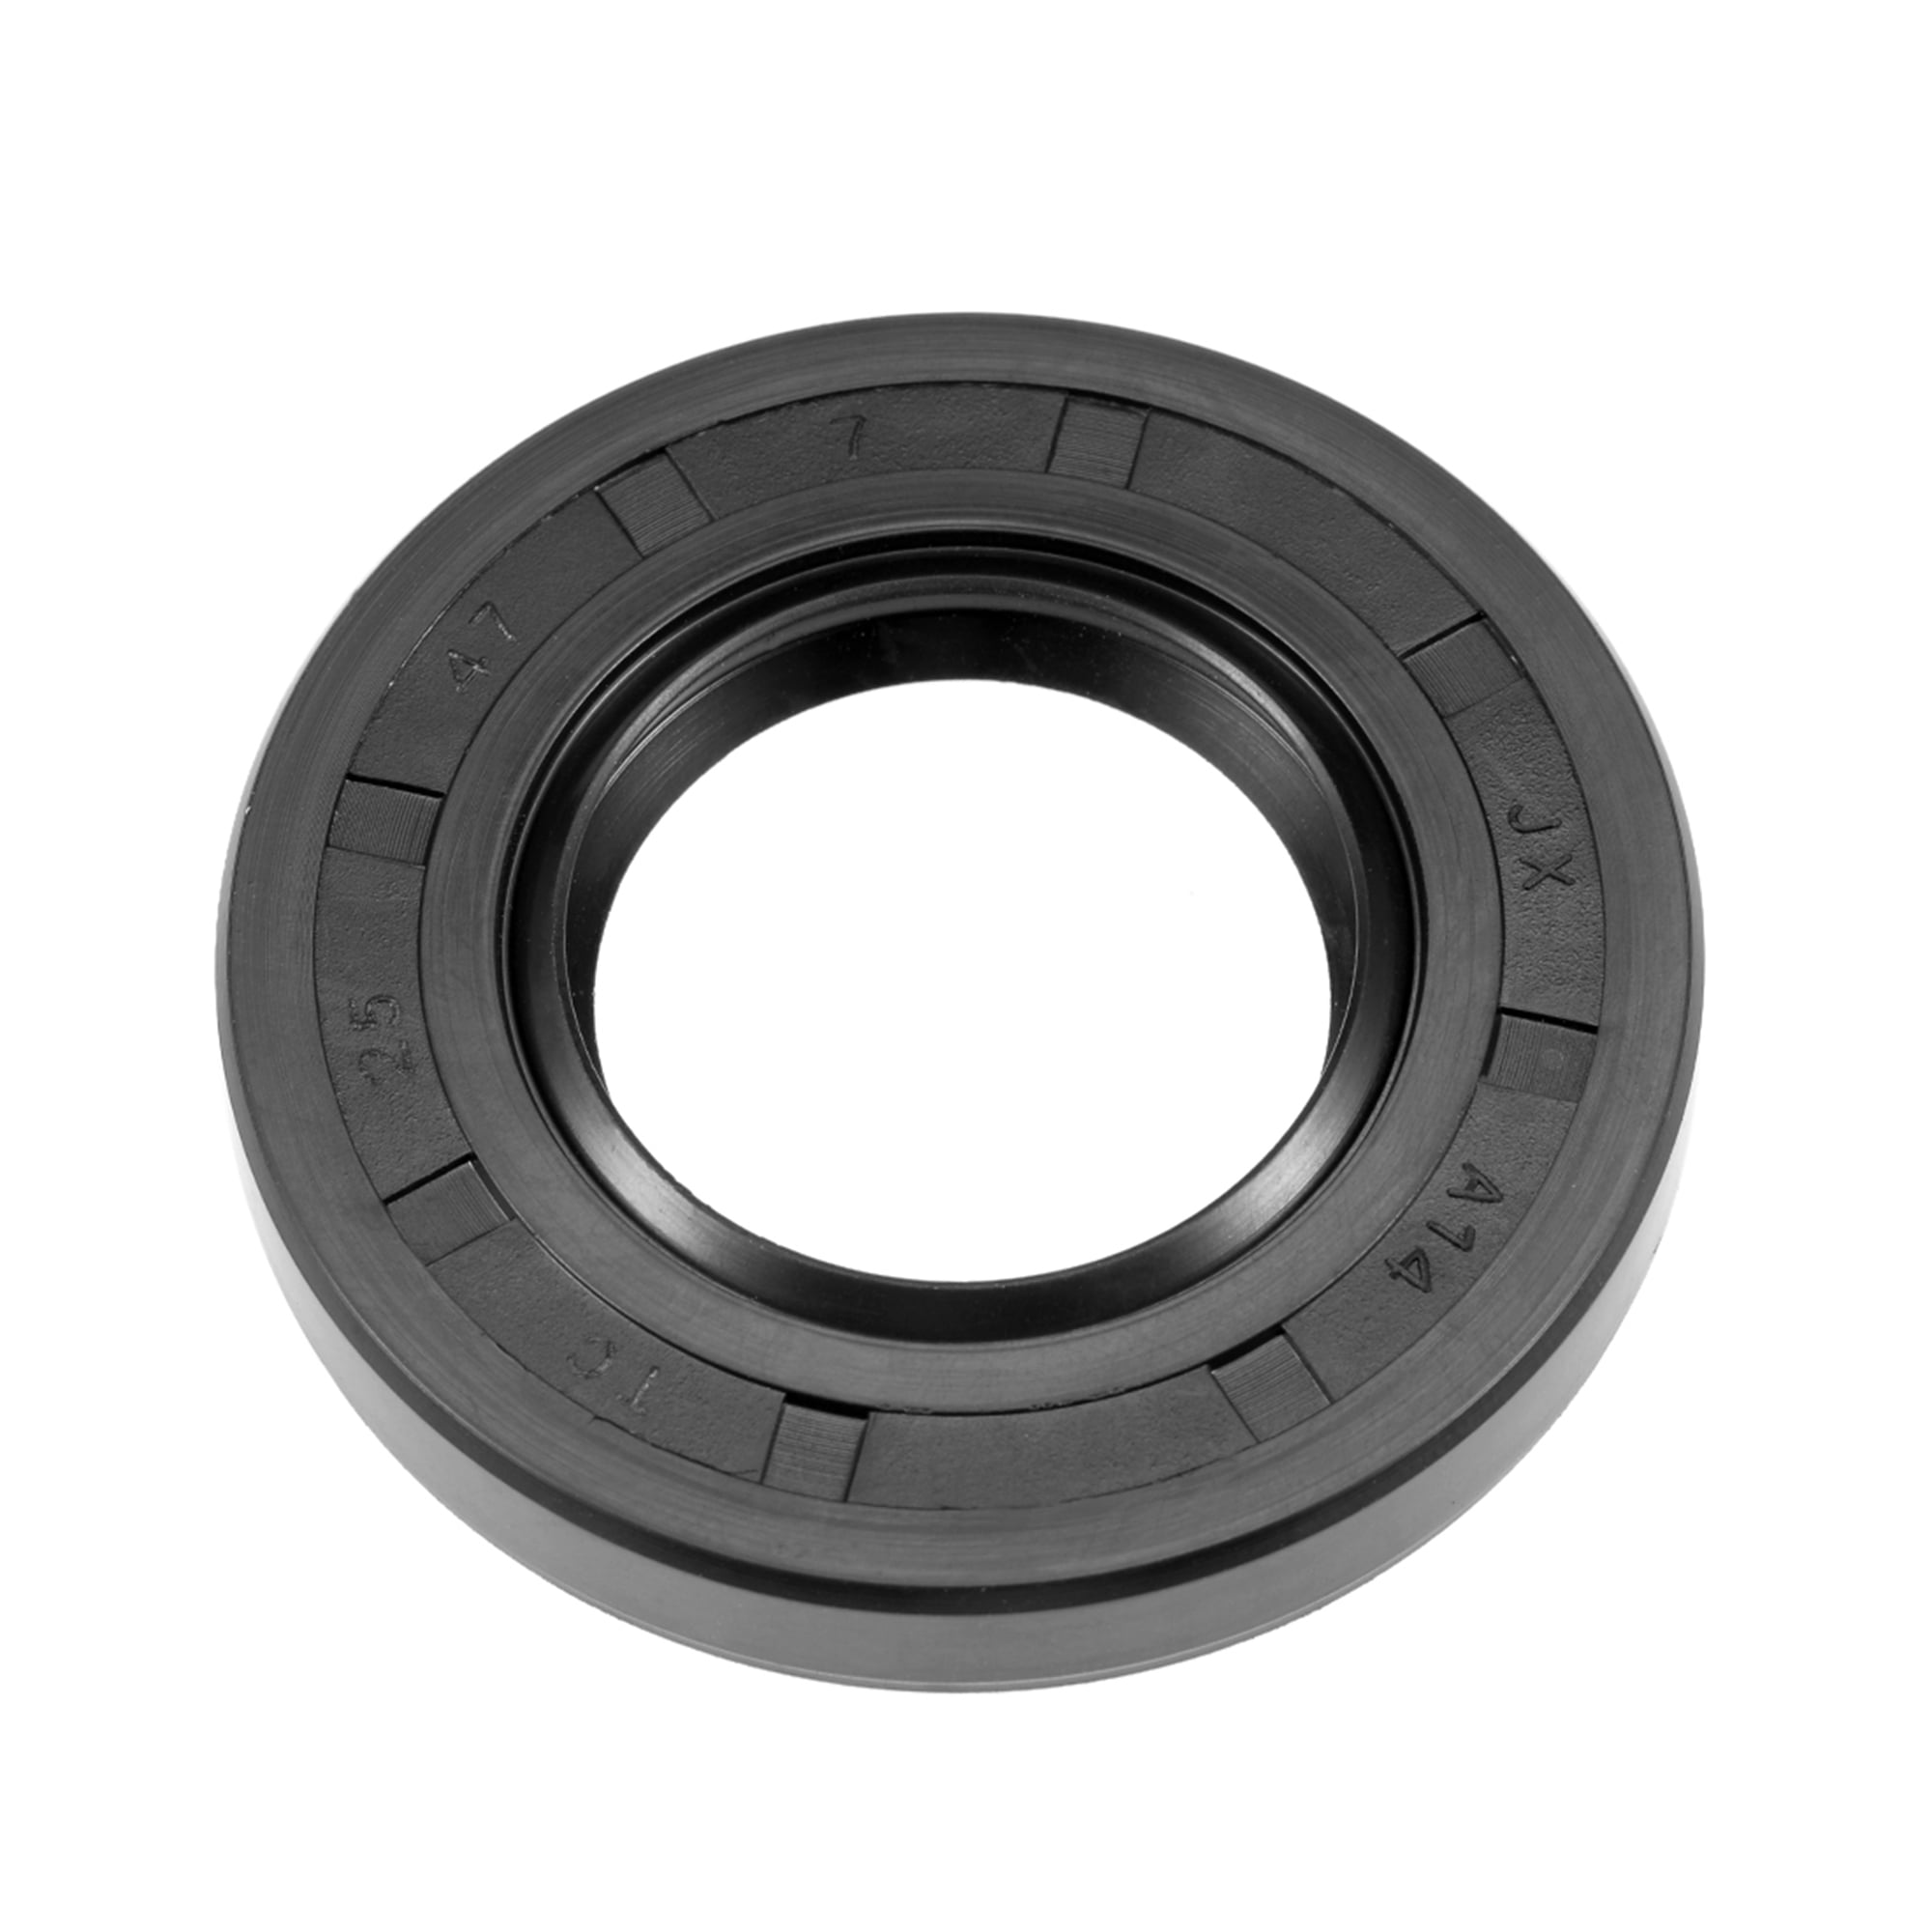 Oil Seal Nitrile Rubber Cover Double Lip TC 35mm x 47mm x 7mm